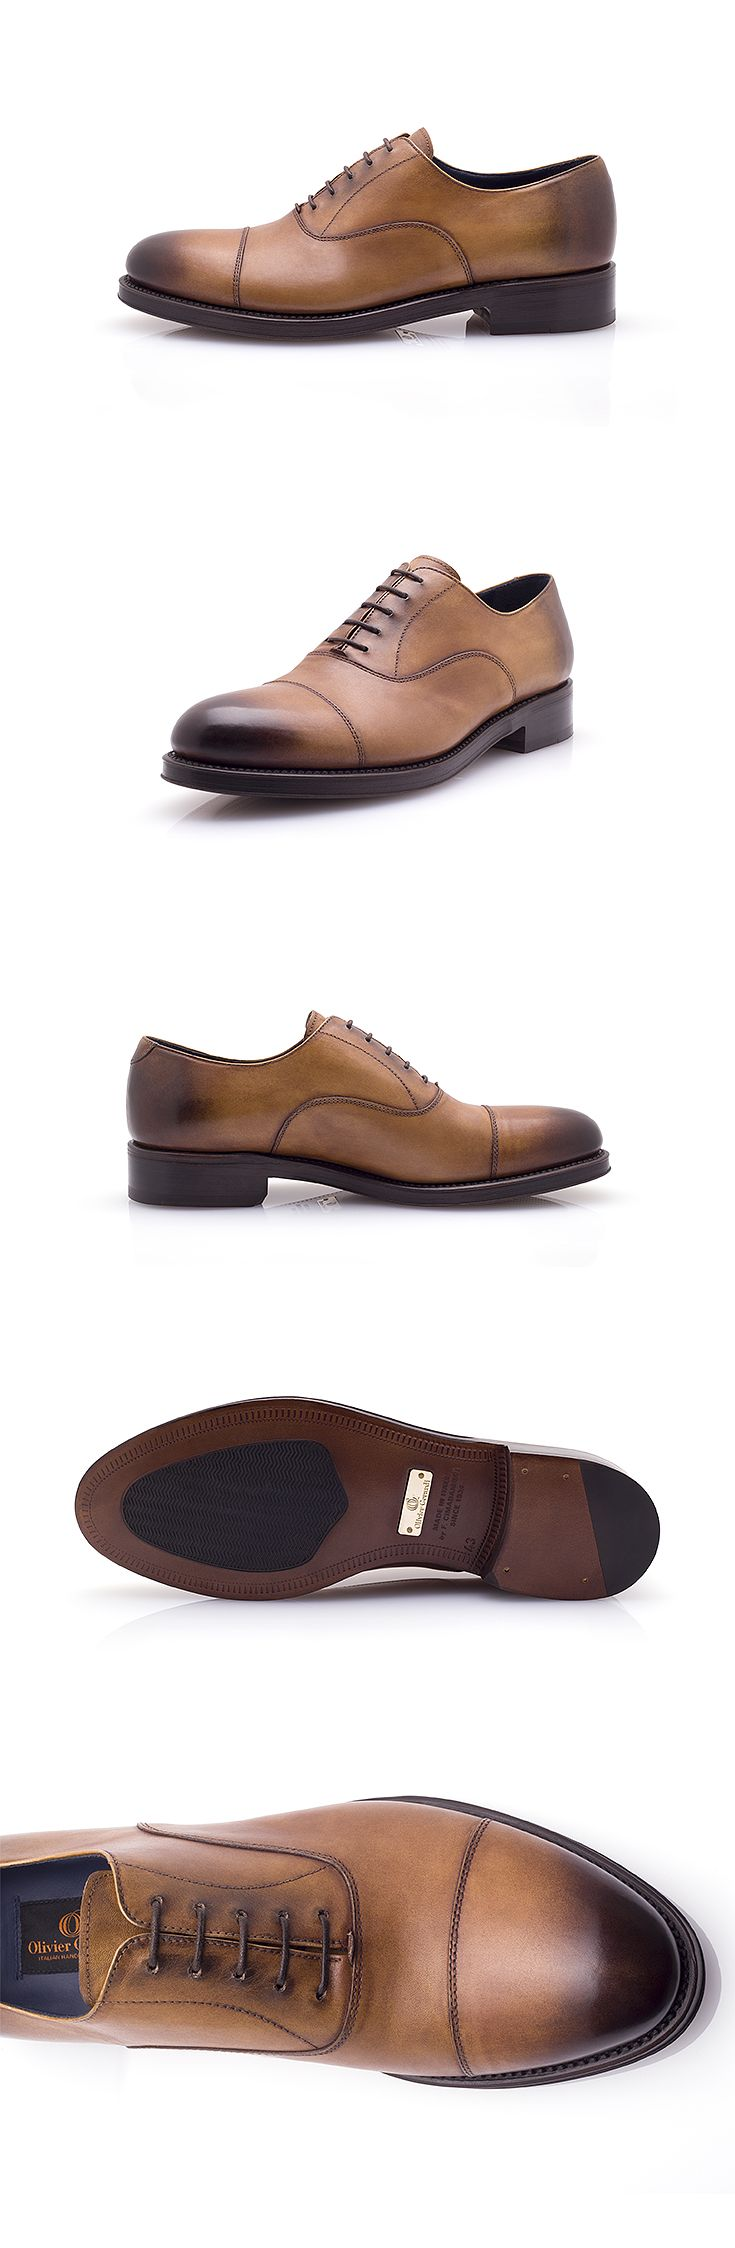 The Paladino is a classic Oxford shoe, ideal for your formal and elegant outfits. However, the subtle nuances of its patina will make you stand out from the crowd in a discreet but indisputable way. #shoes #oxford #goodyear #luxury #brown